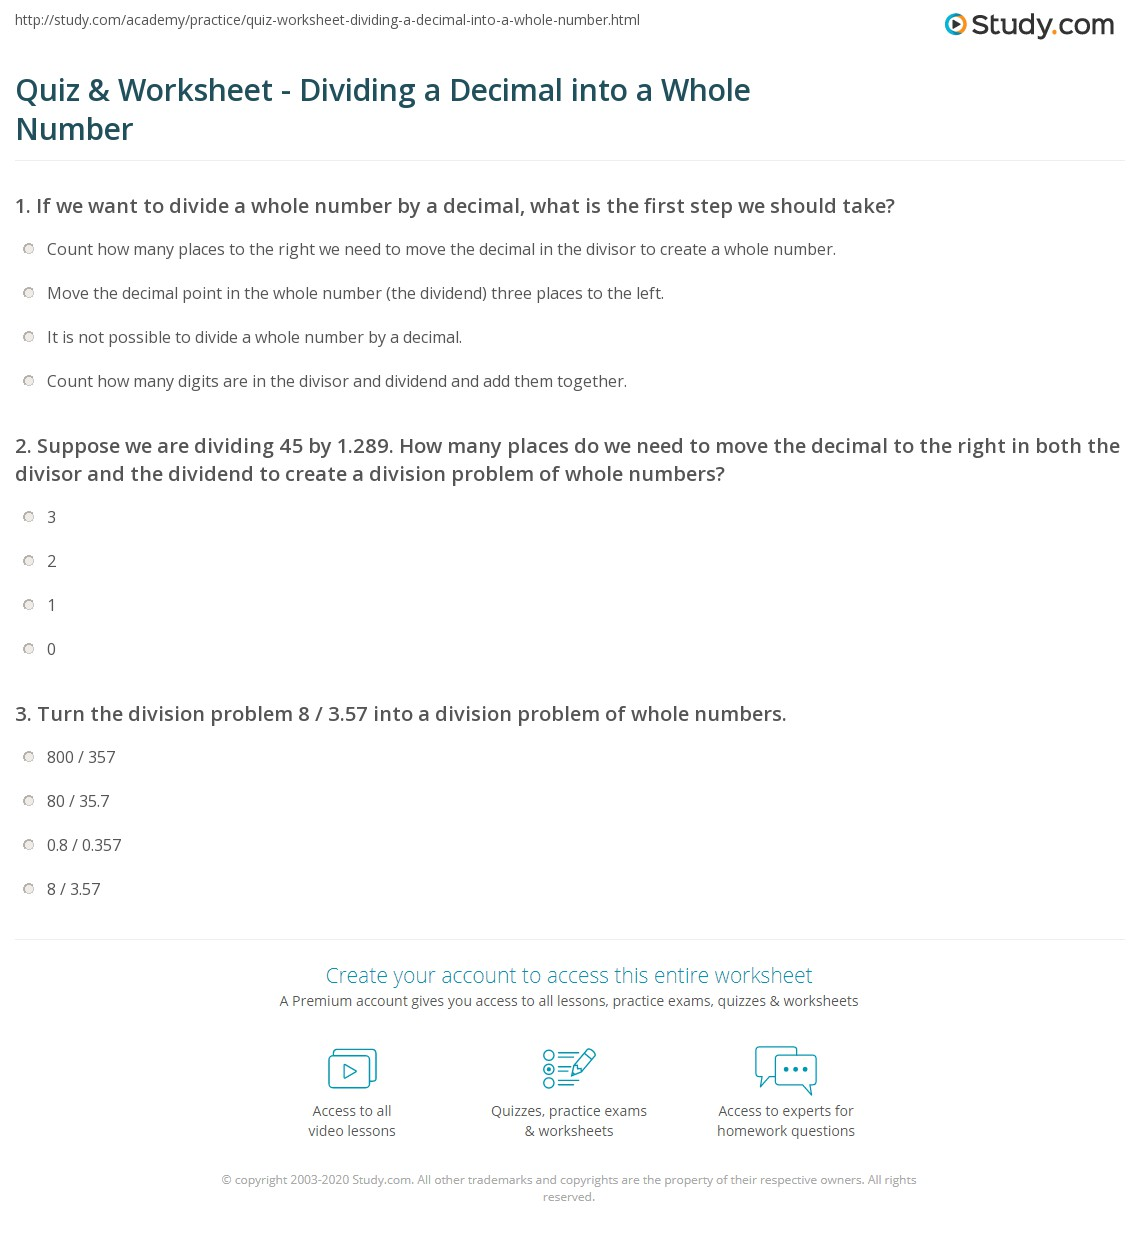 Quiz Worksheet Dividing a Decimal into a Whole Number – Dividing Whole Numbers by Decimals Worksheet